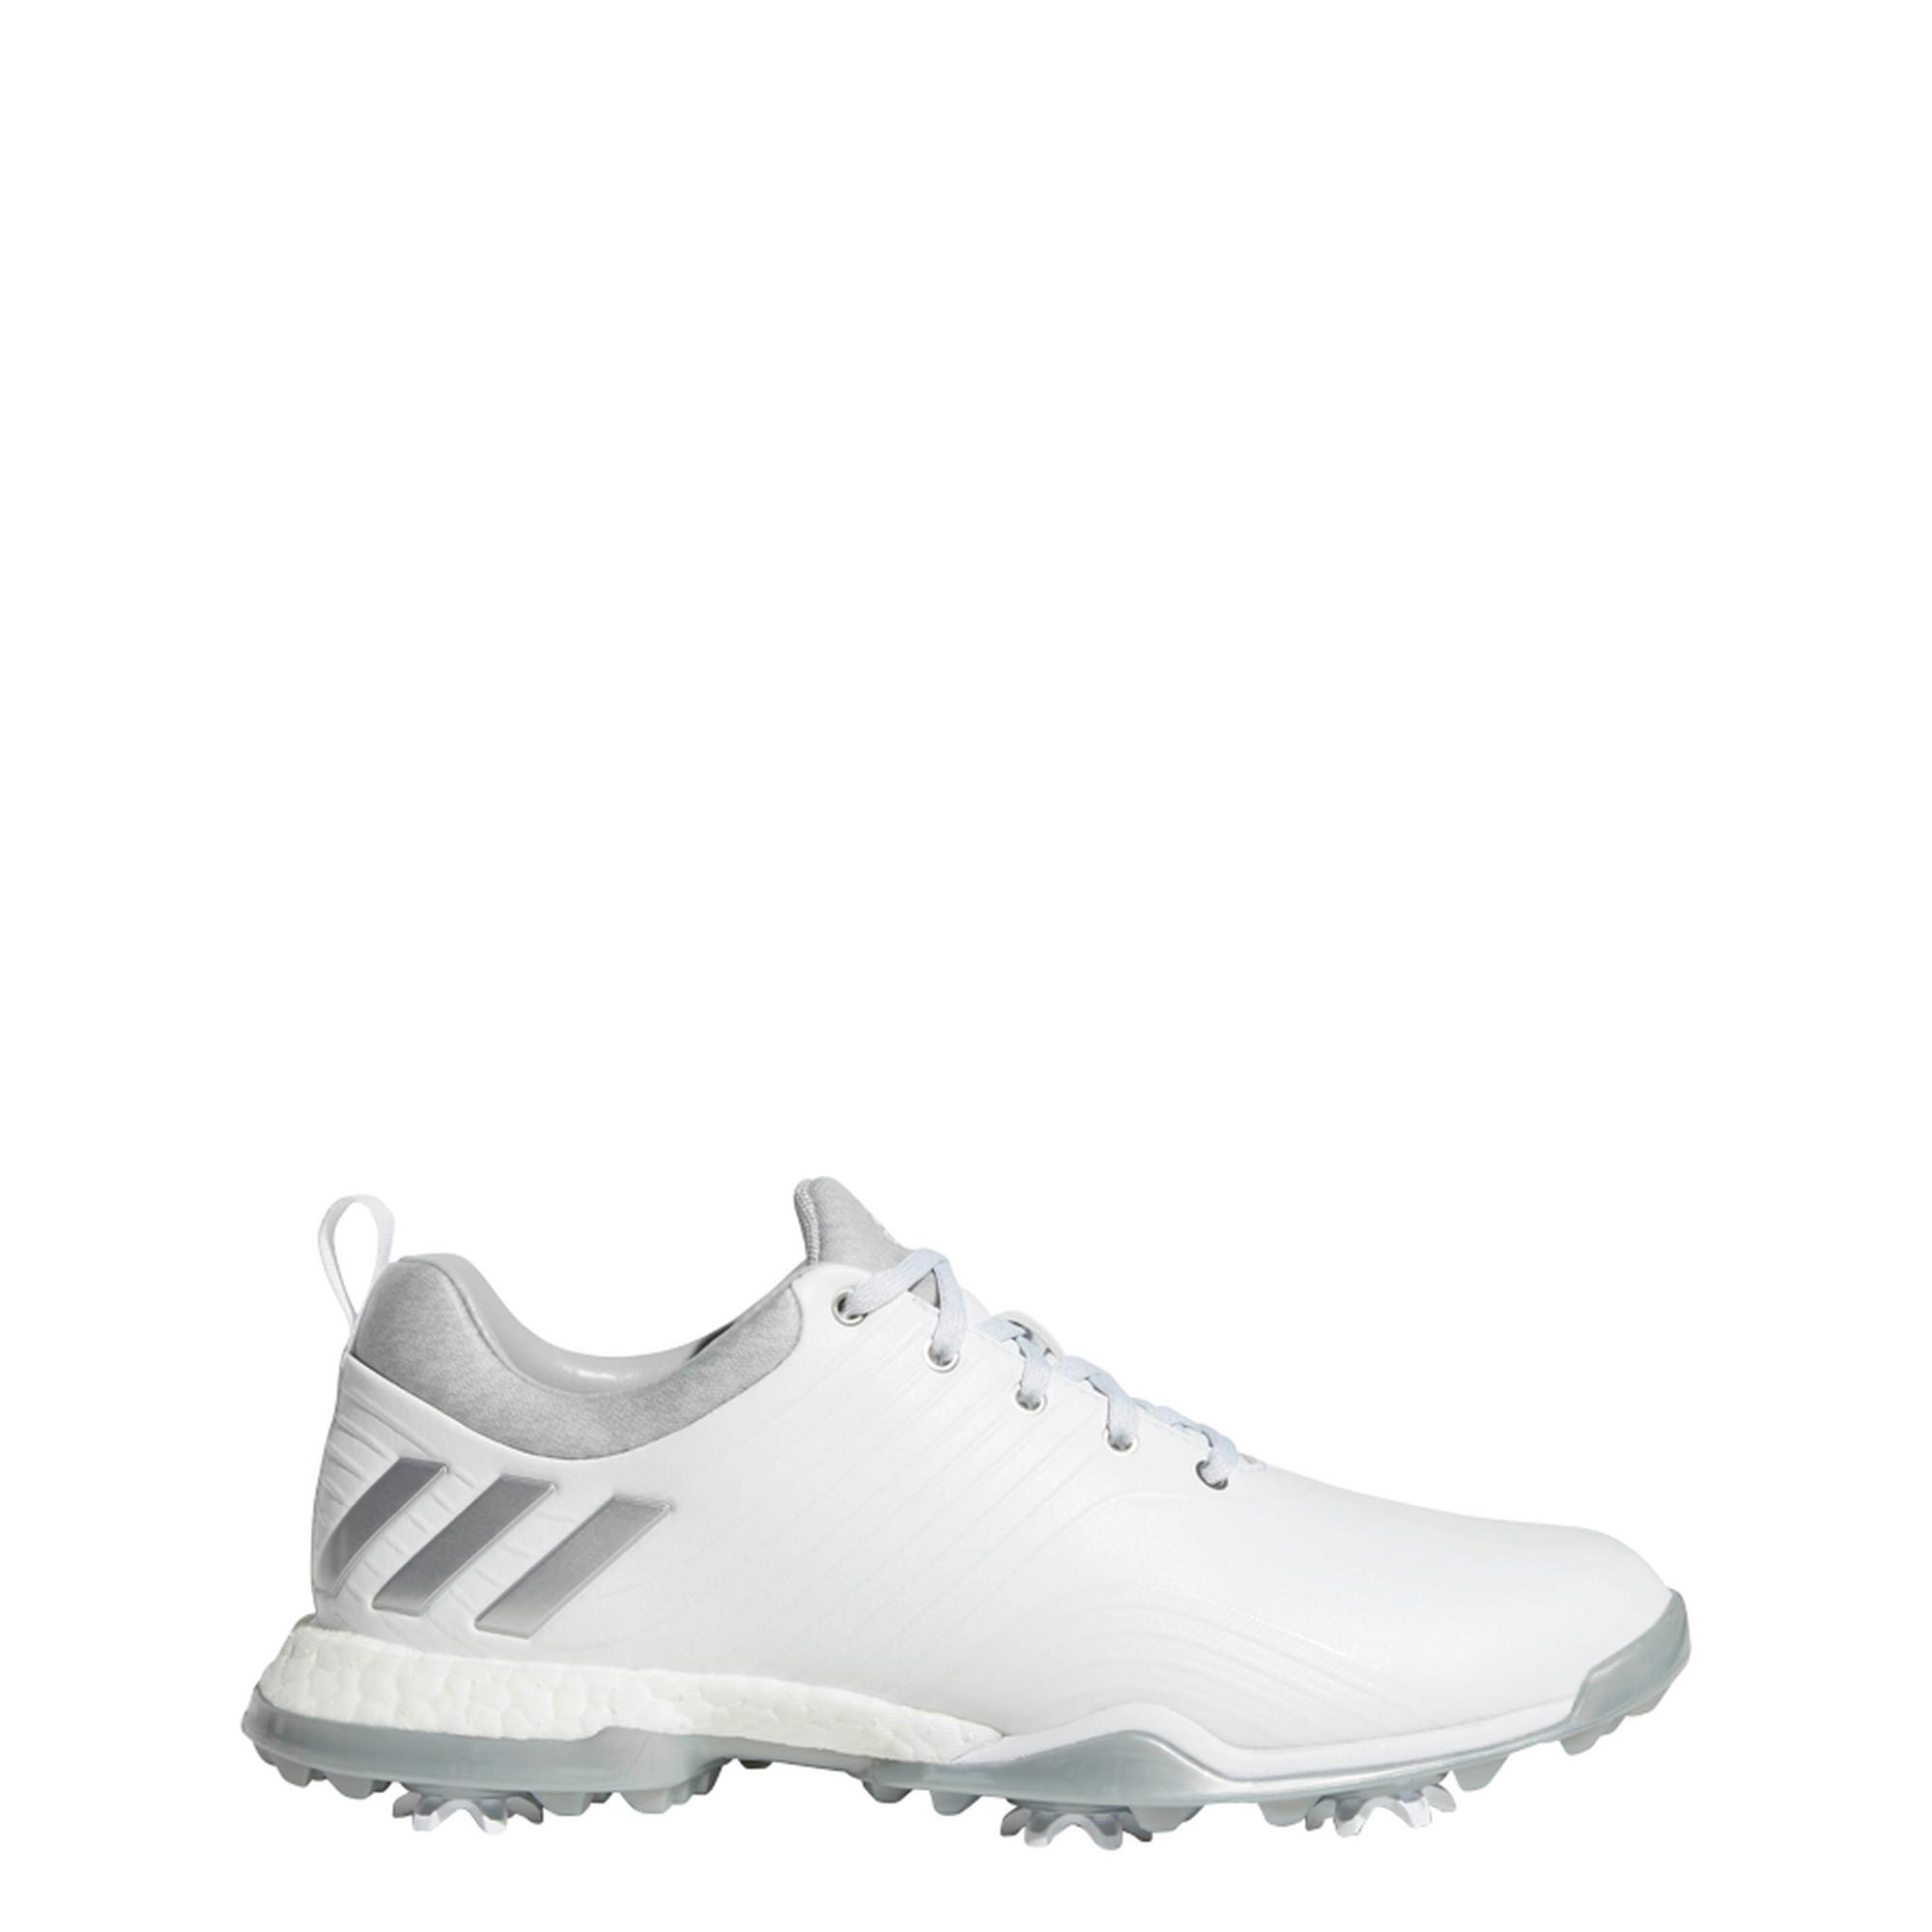 Women's Adipower 4ORGED - WHITE/GREY